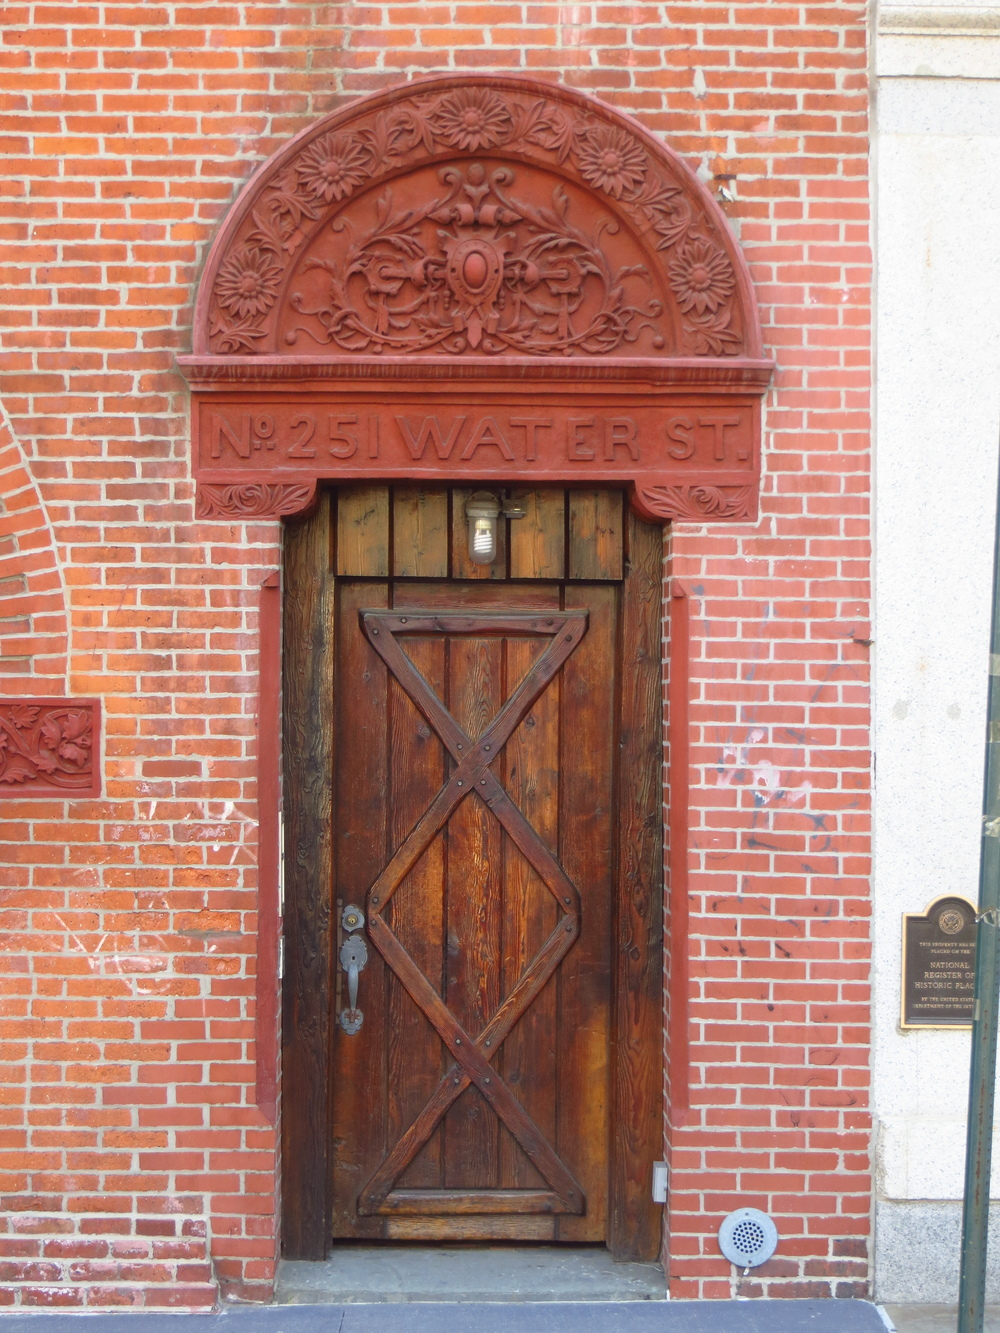 Cool old door on cool old building